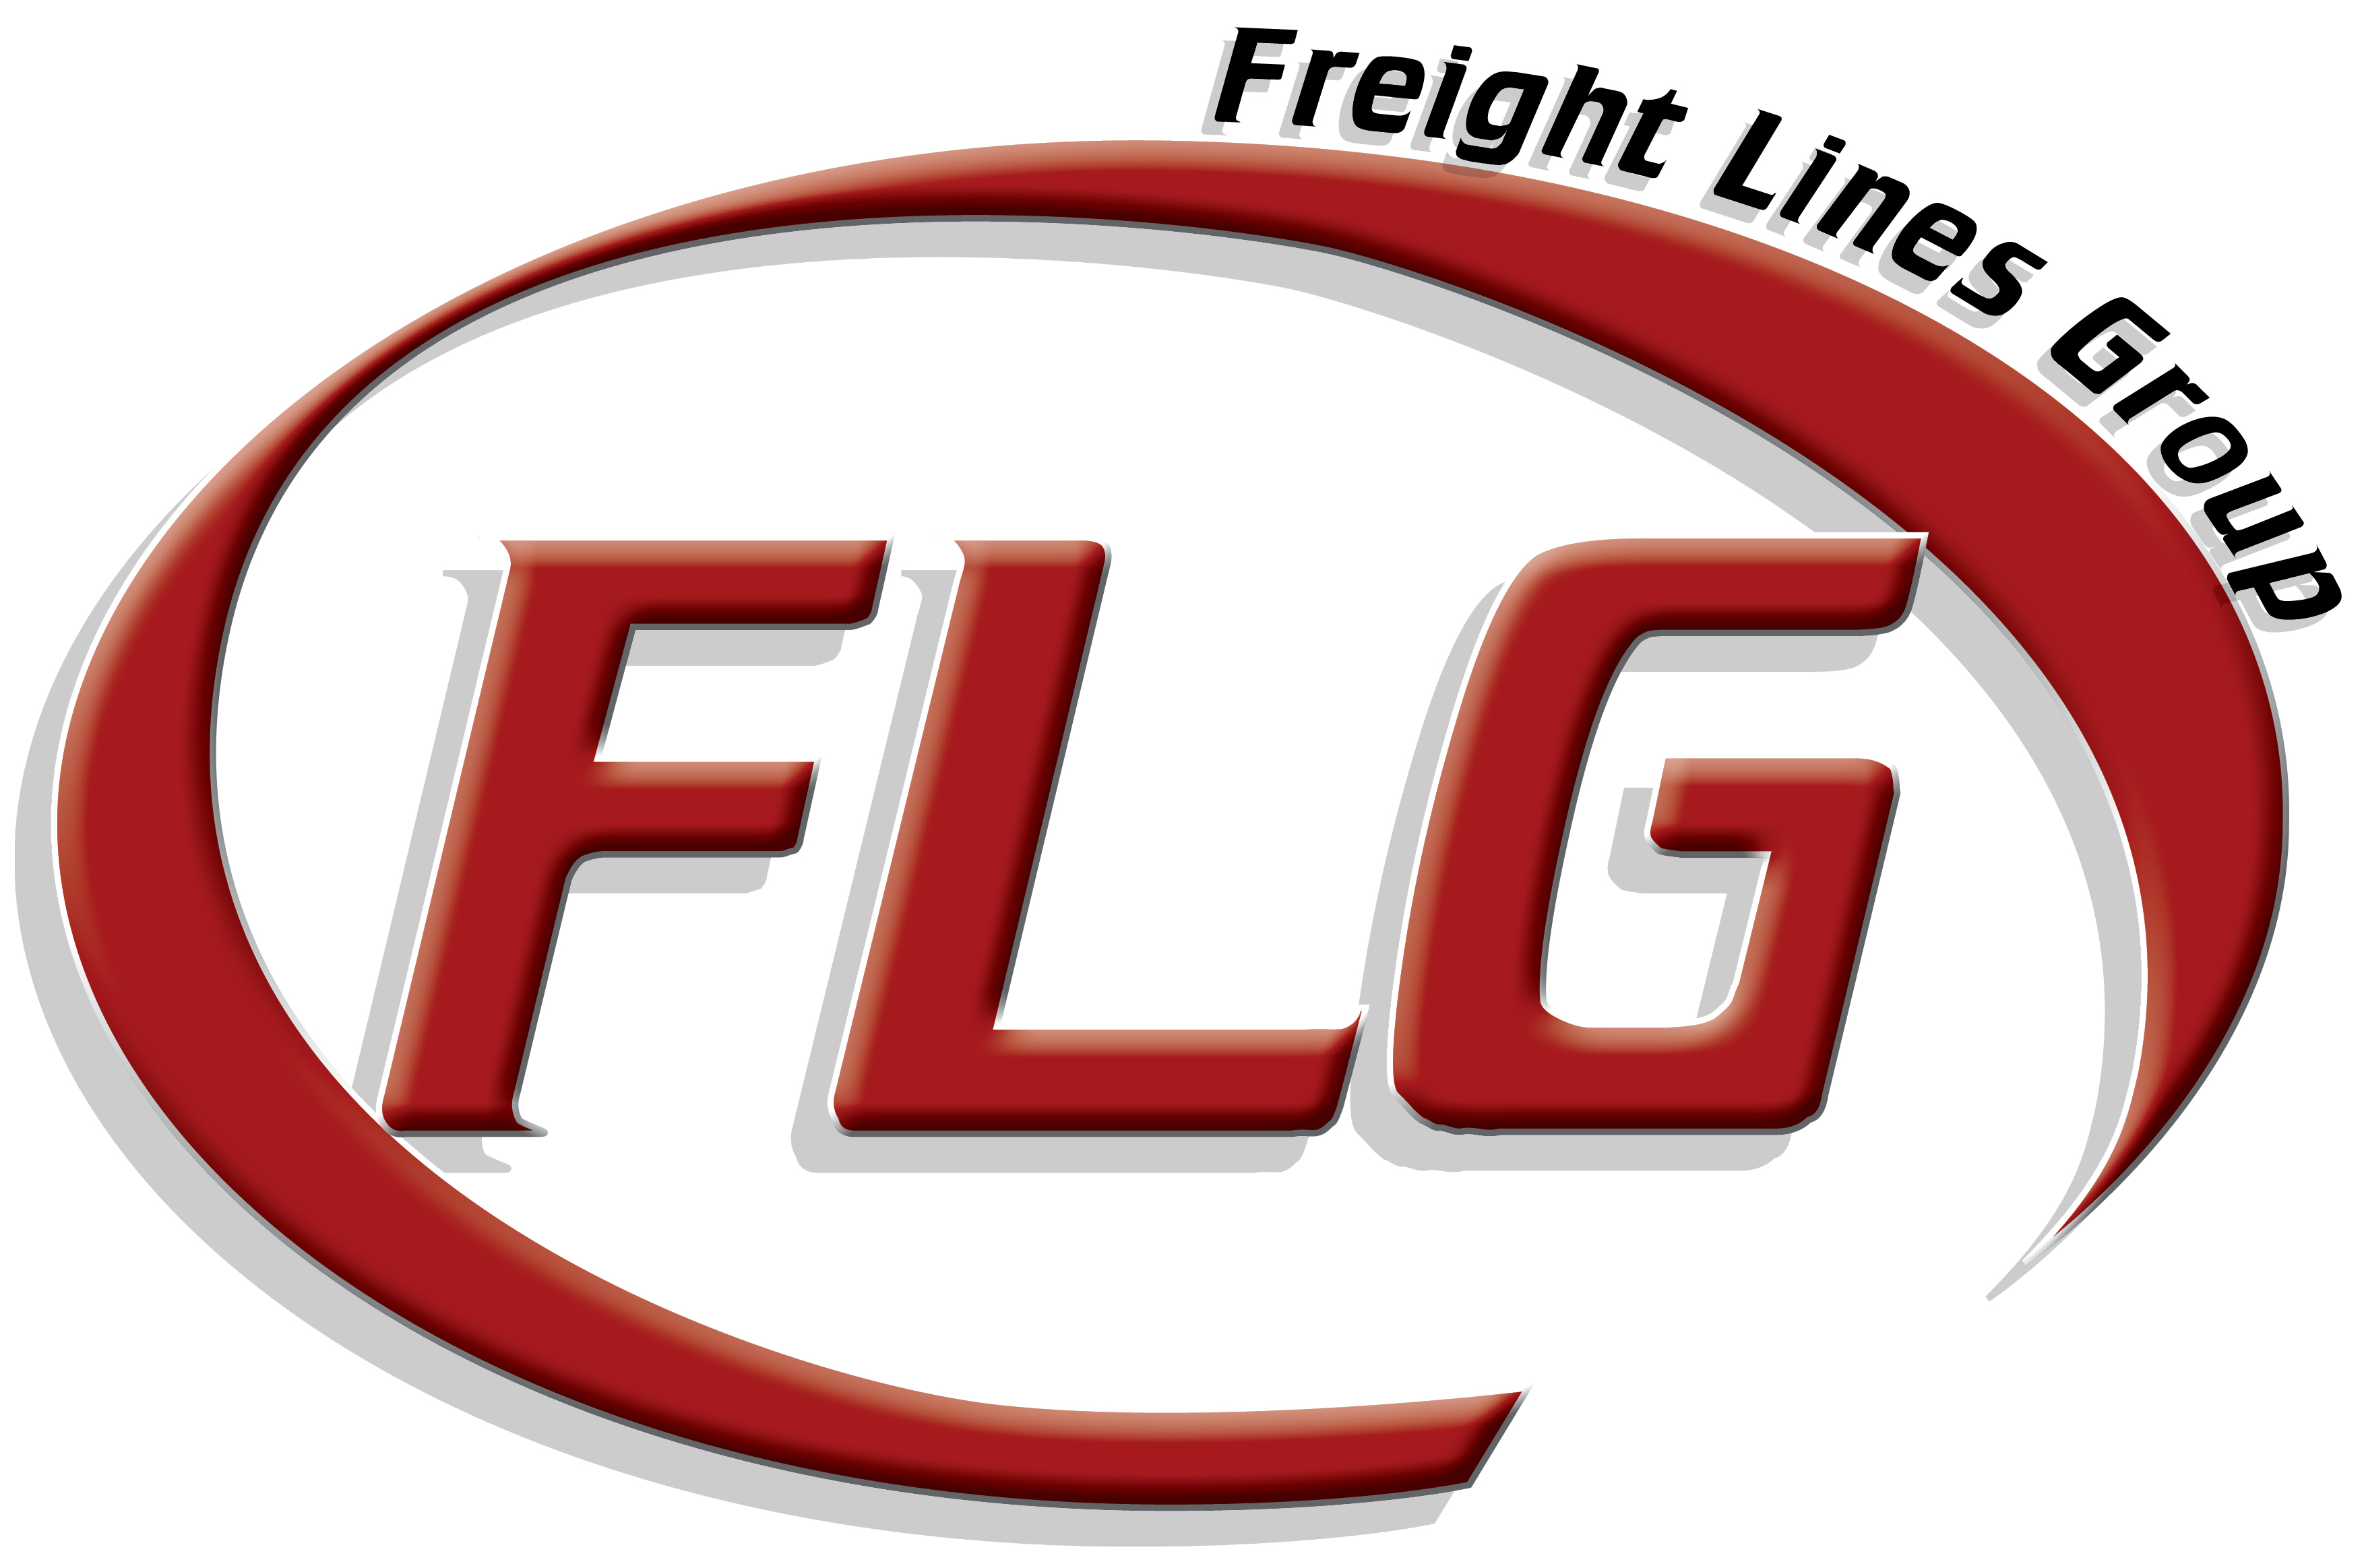 Freight Lines Group